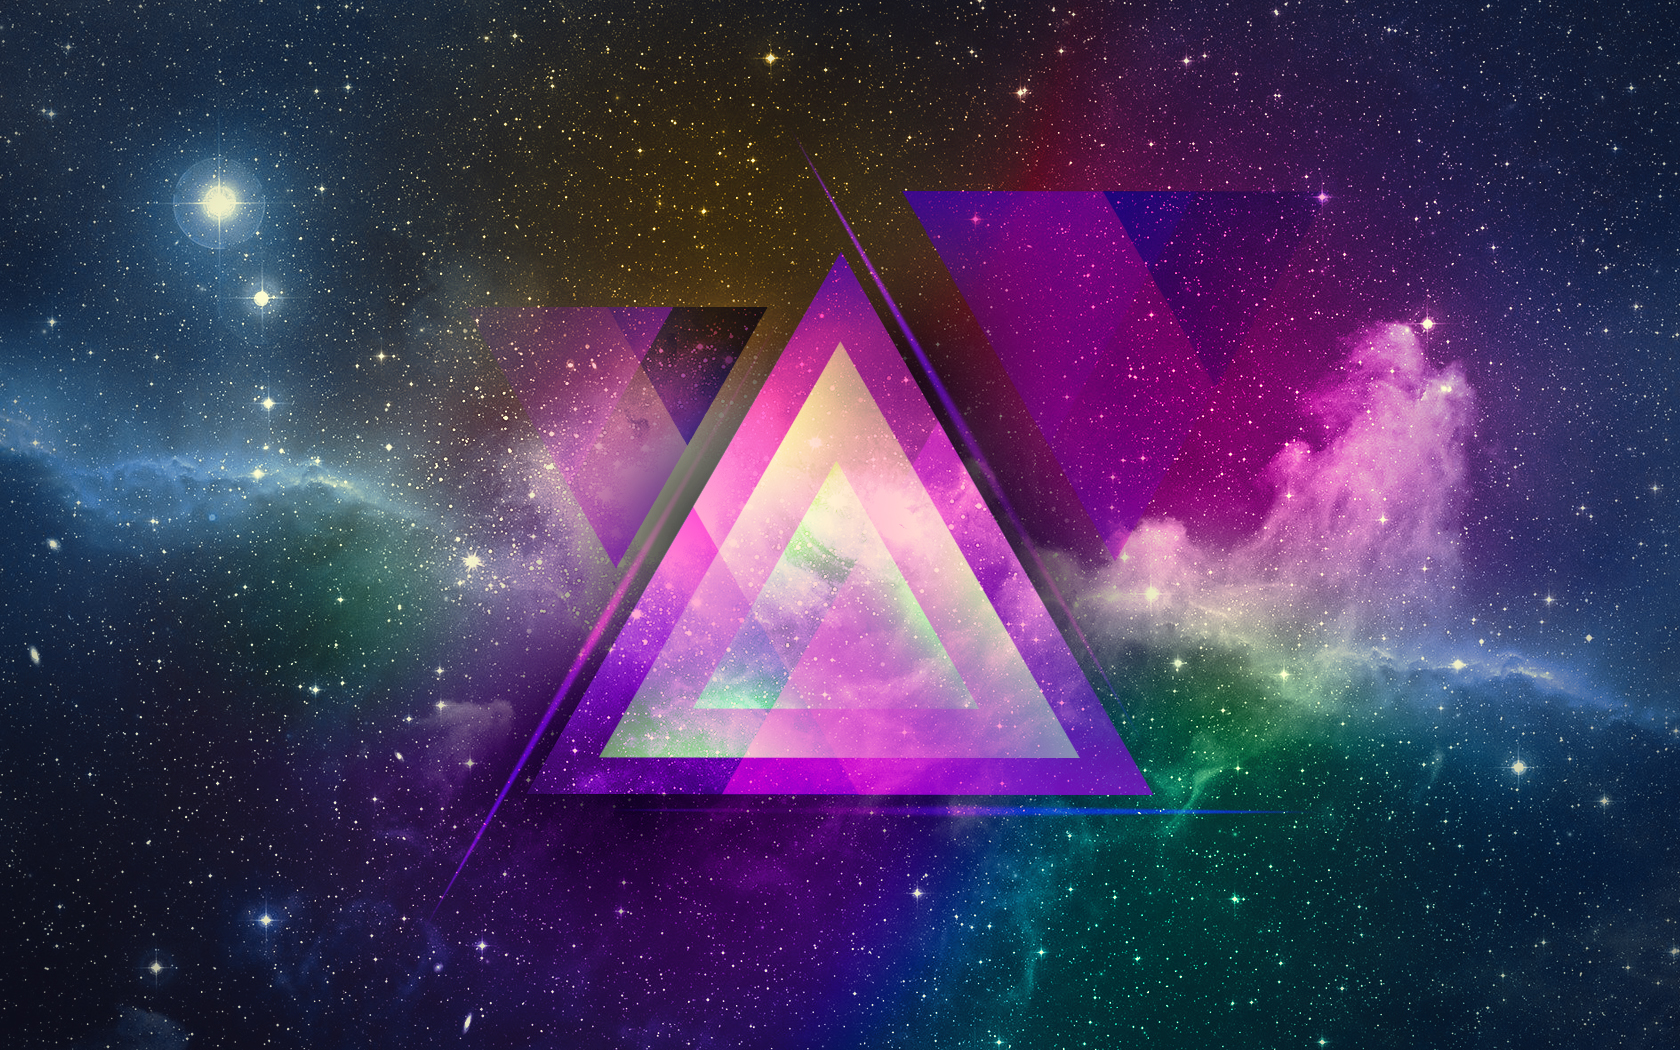 Abstract space wallpaper by Only-unnamed on DeviantArt